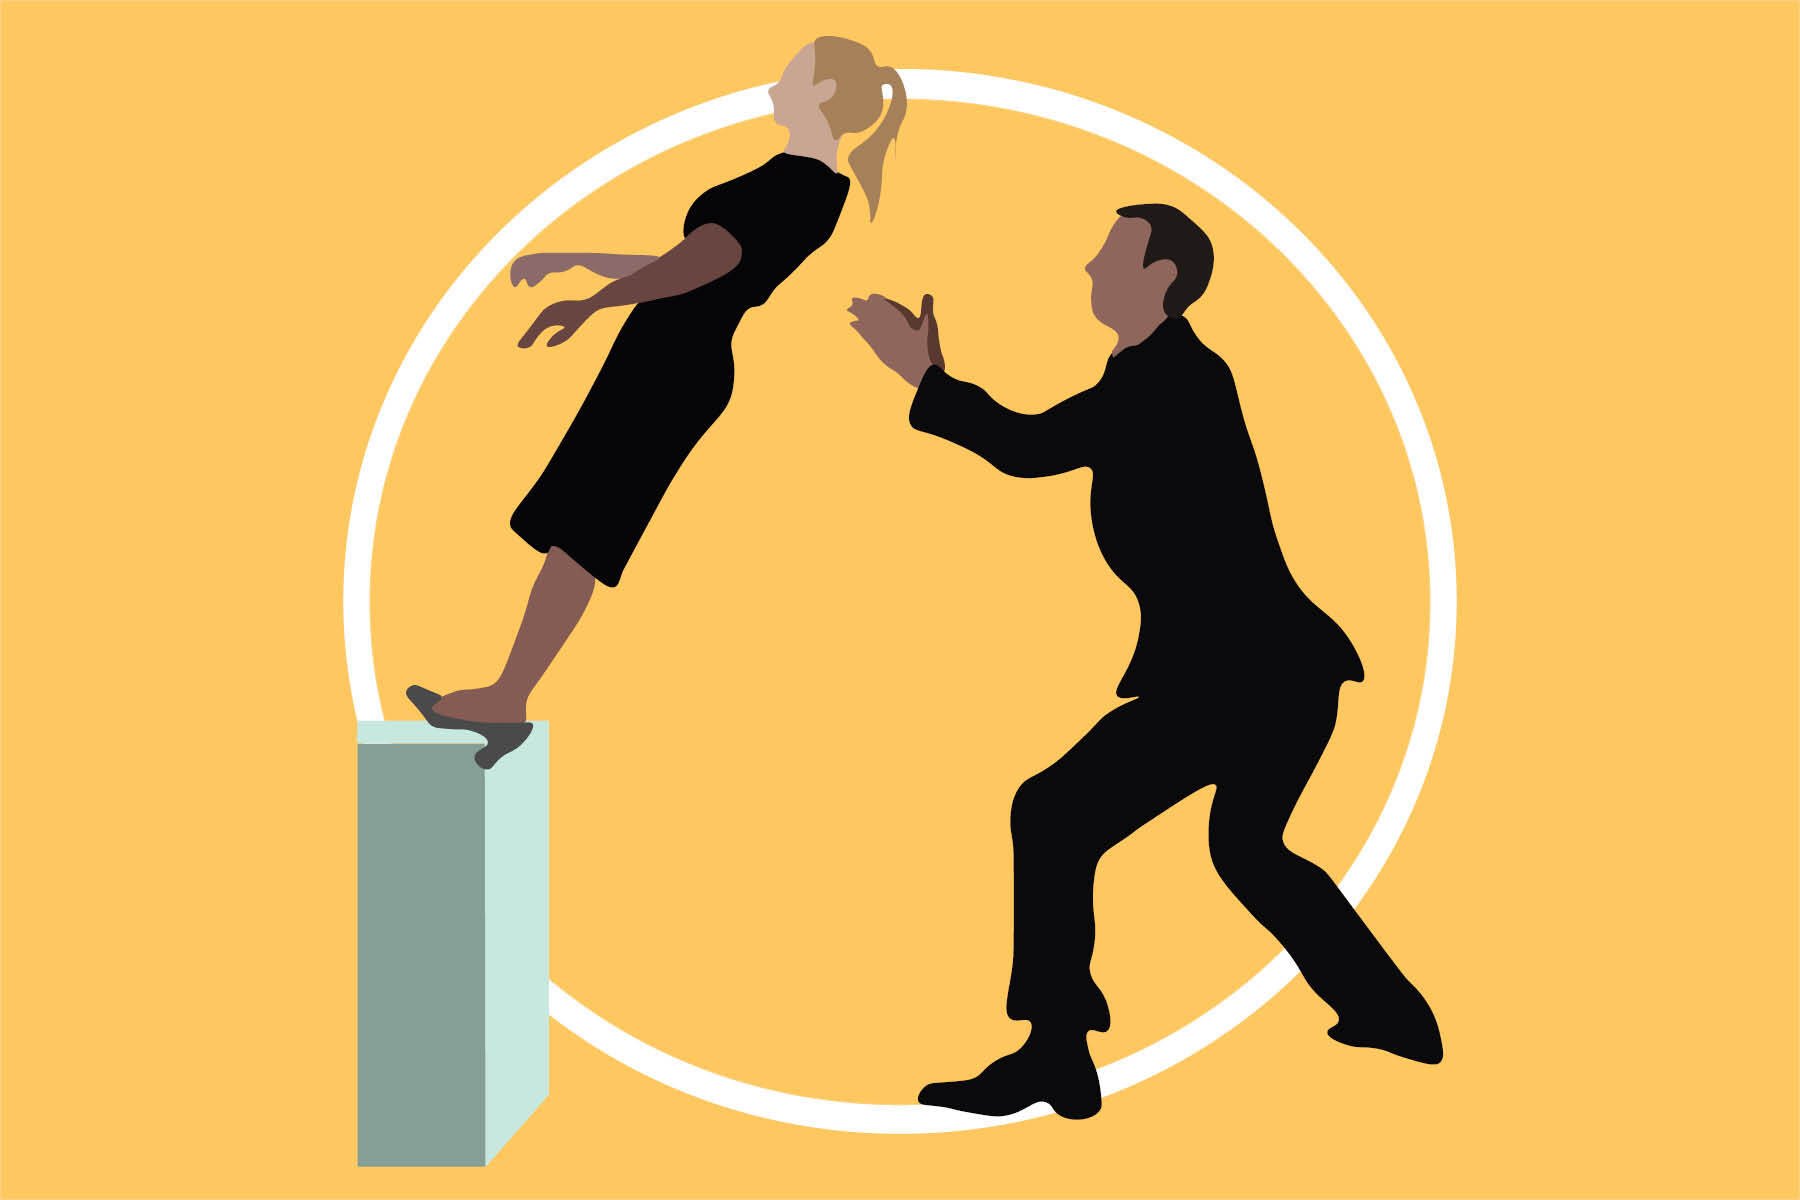 Illustration by Ellen Budell of two individuals participating in a Trust Exercise